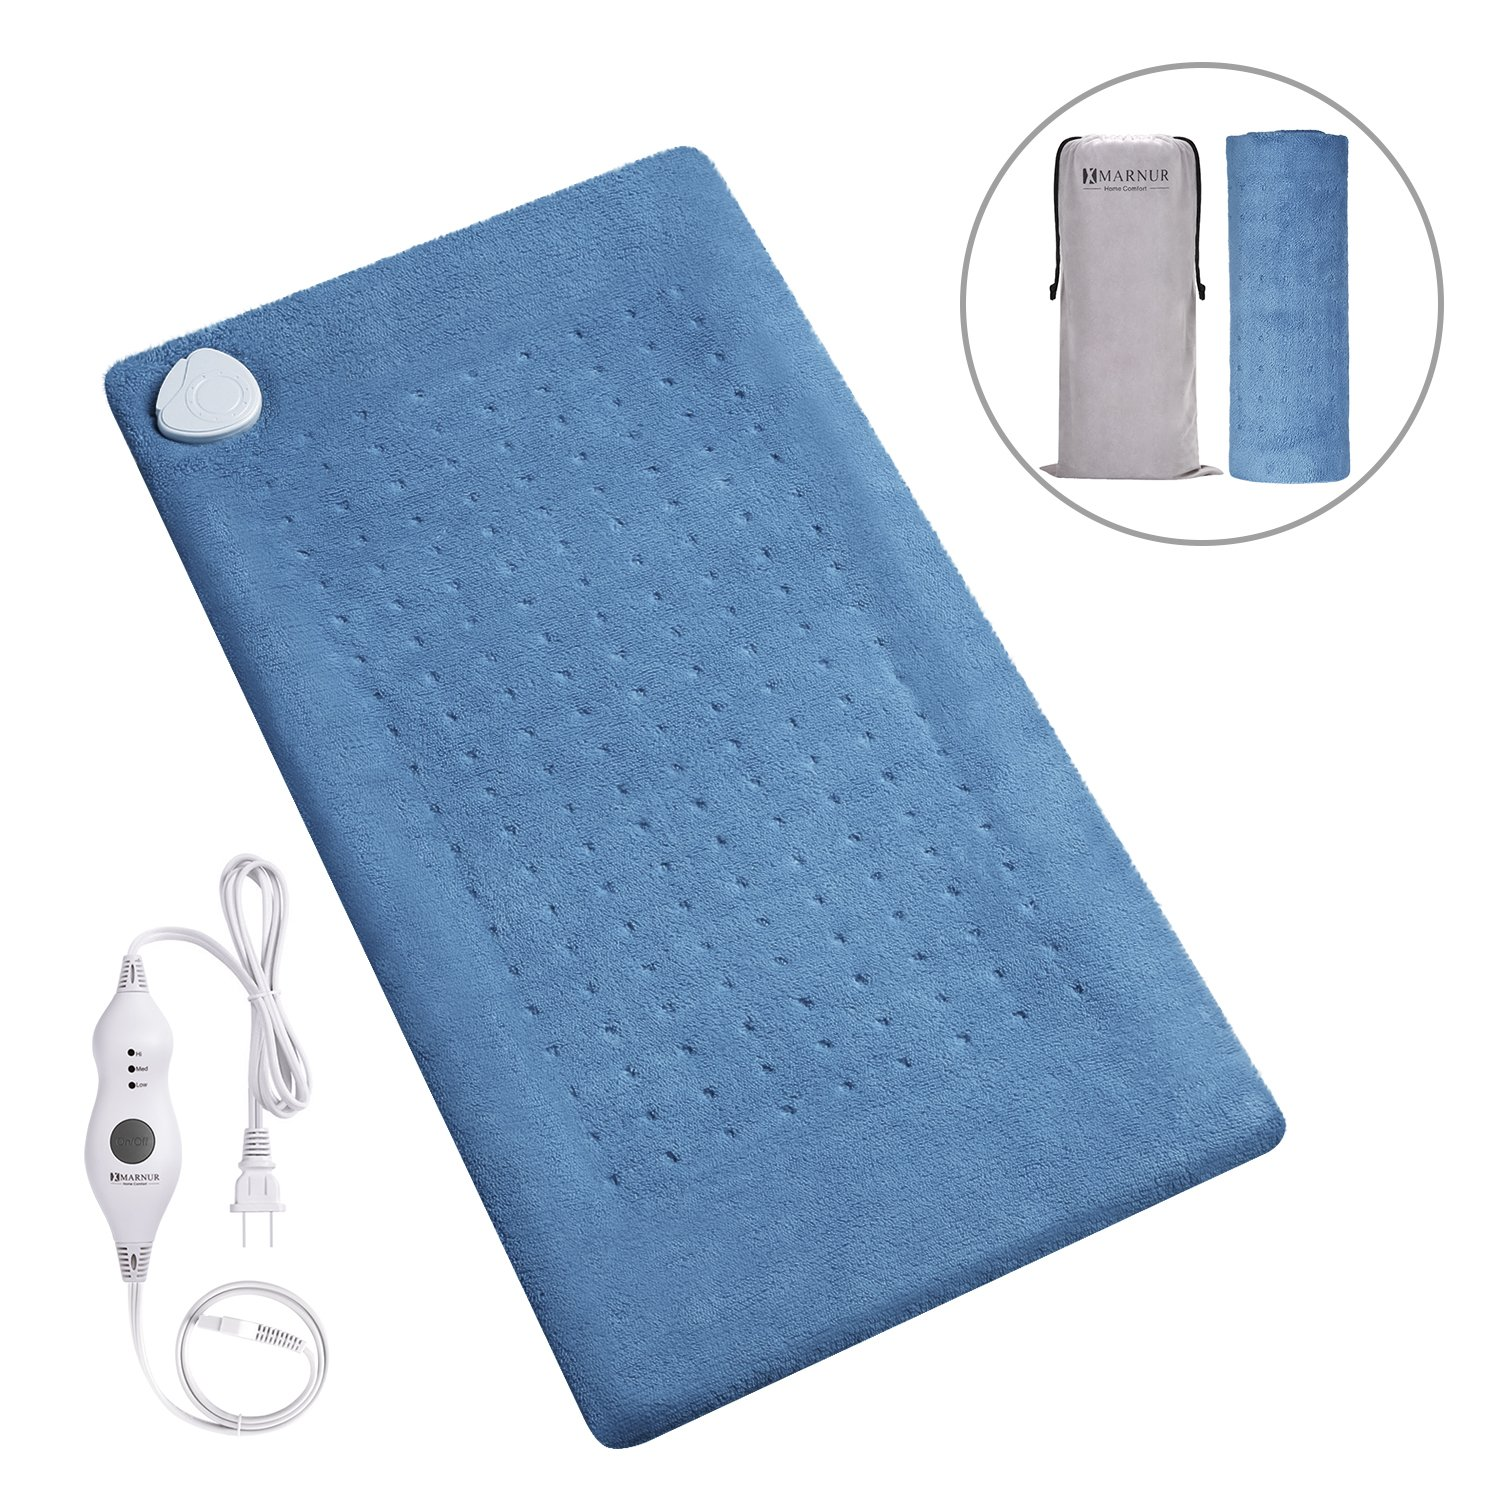 MARNUR XL Electric Heating Pad with Fast-Heating Technology, 3 Heat Settings, Soft Plush and Storage Bag, Heat Therapy for Neck/Shoulder/ Back Pain Relief(Dark Blue) - 12''x24''